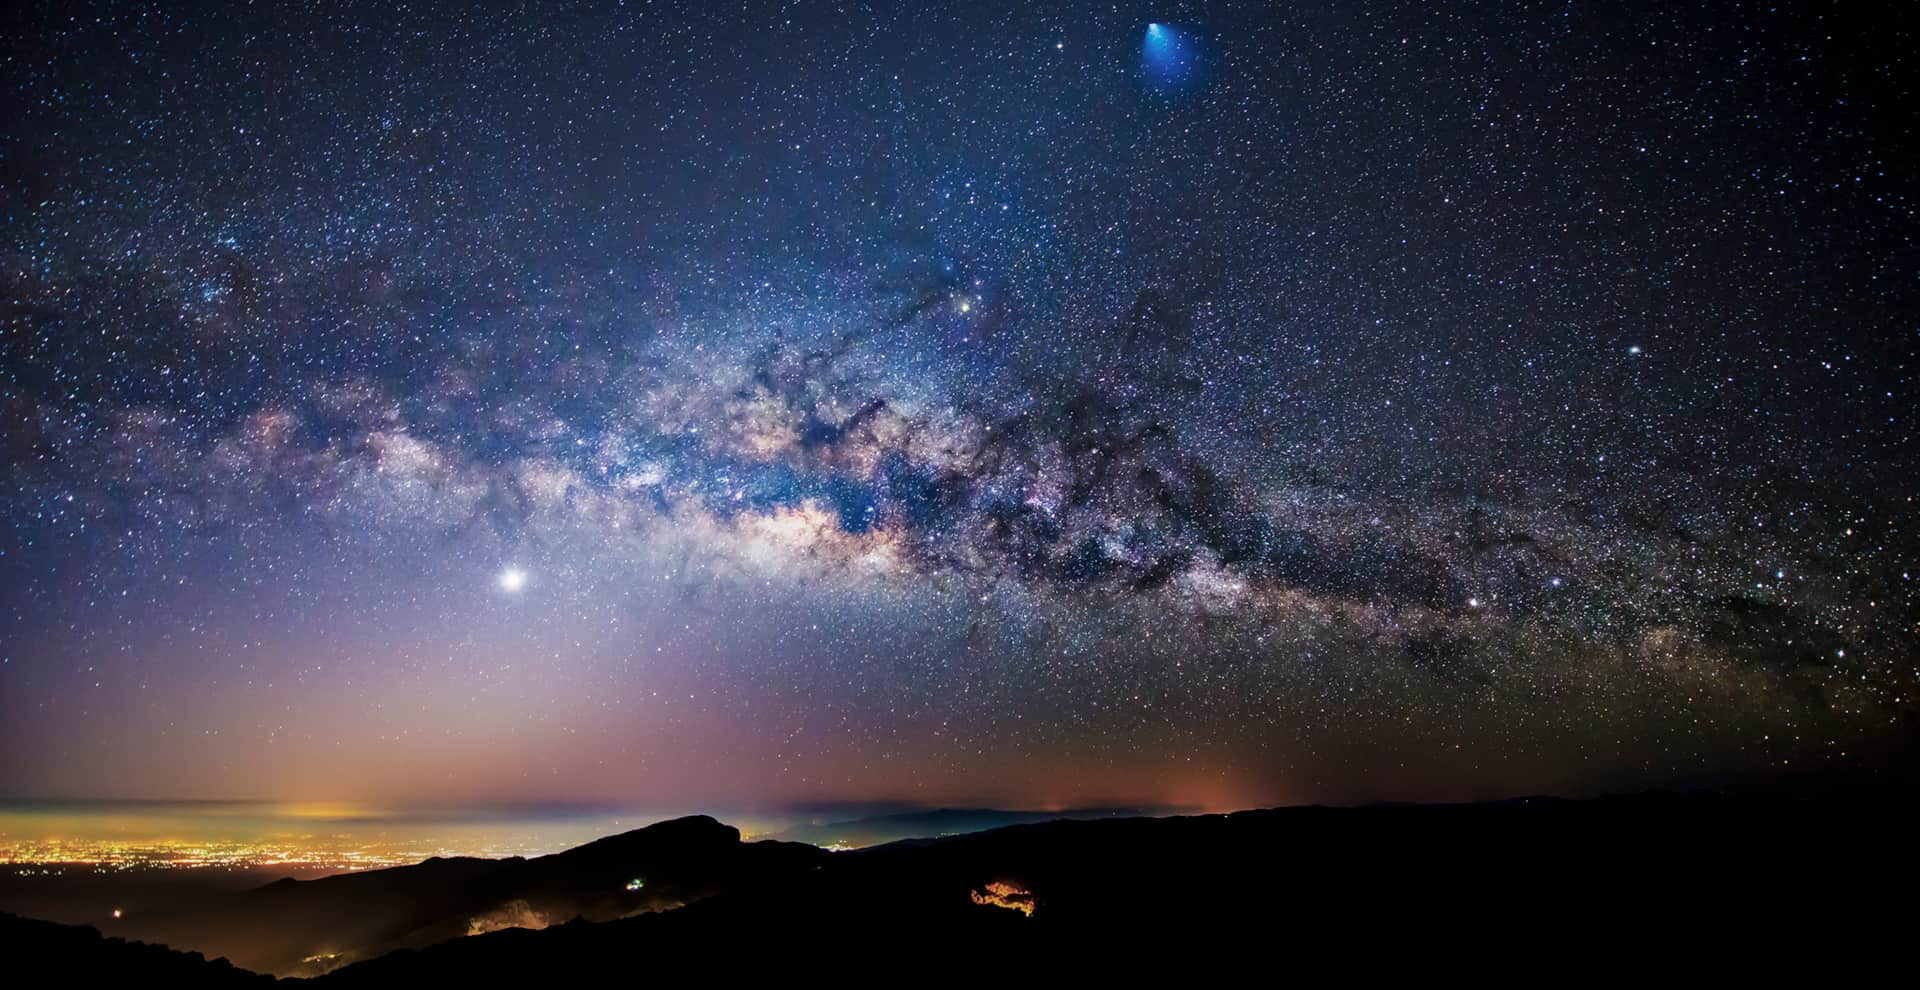 Nighttime view of a rocket, meteor, and the Milky Way Galaxy over Thailand